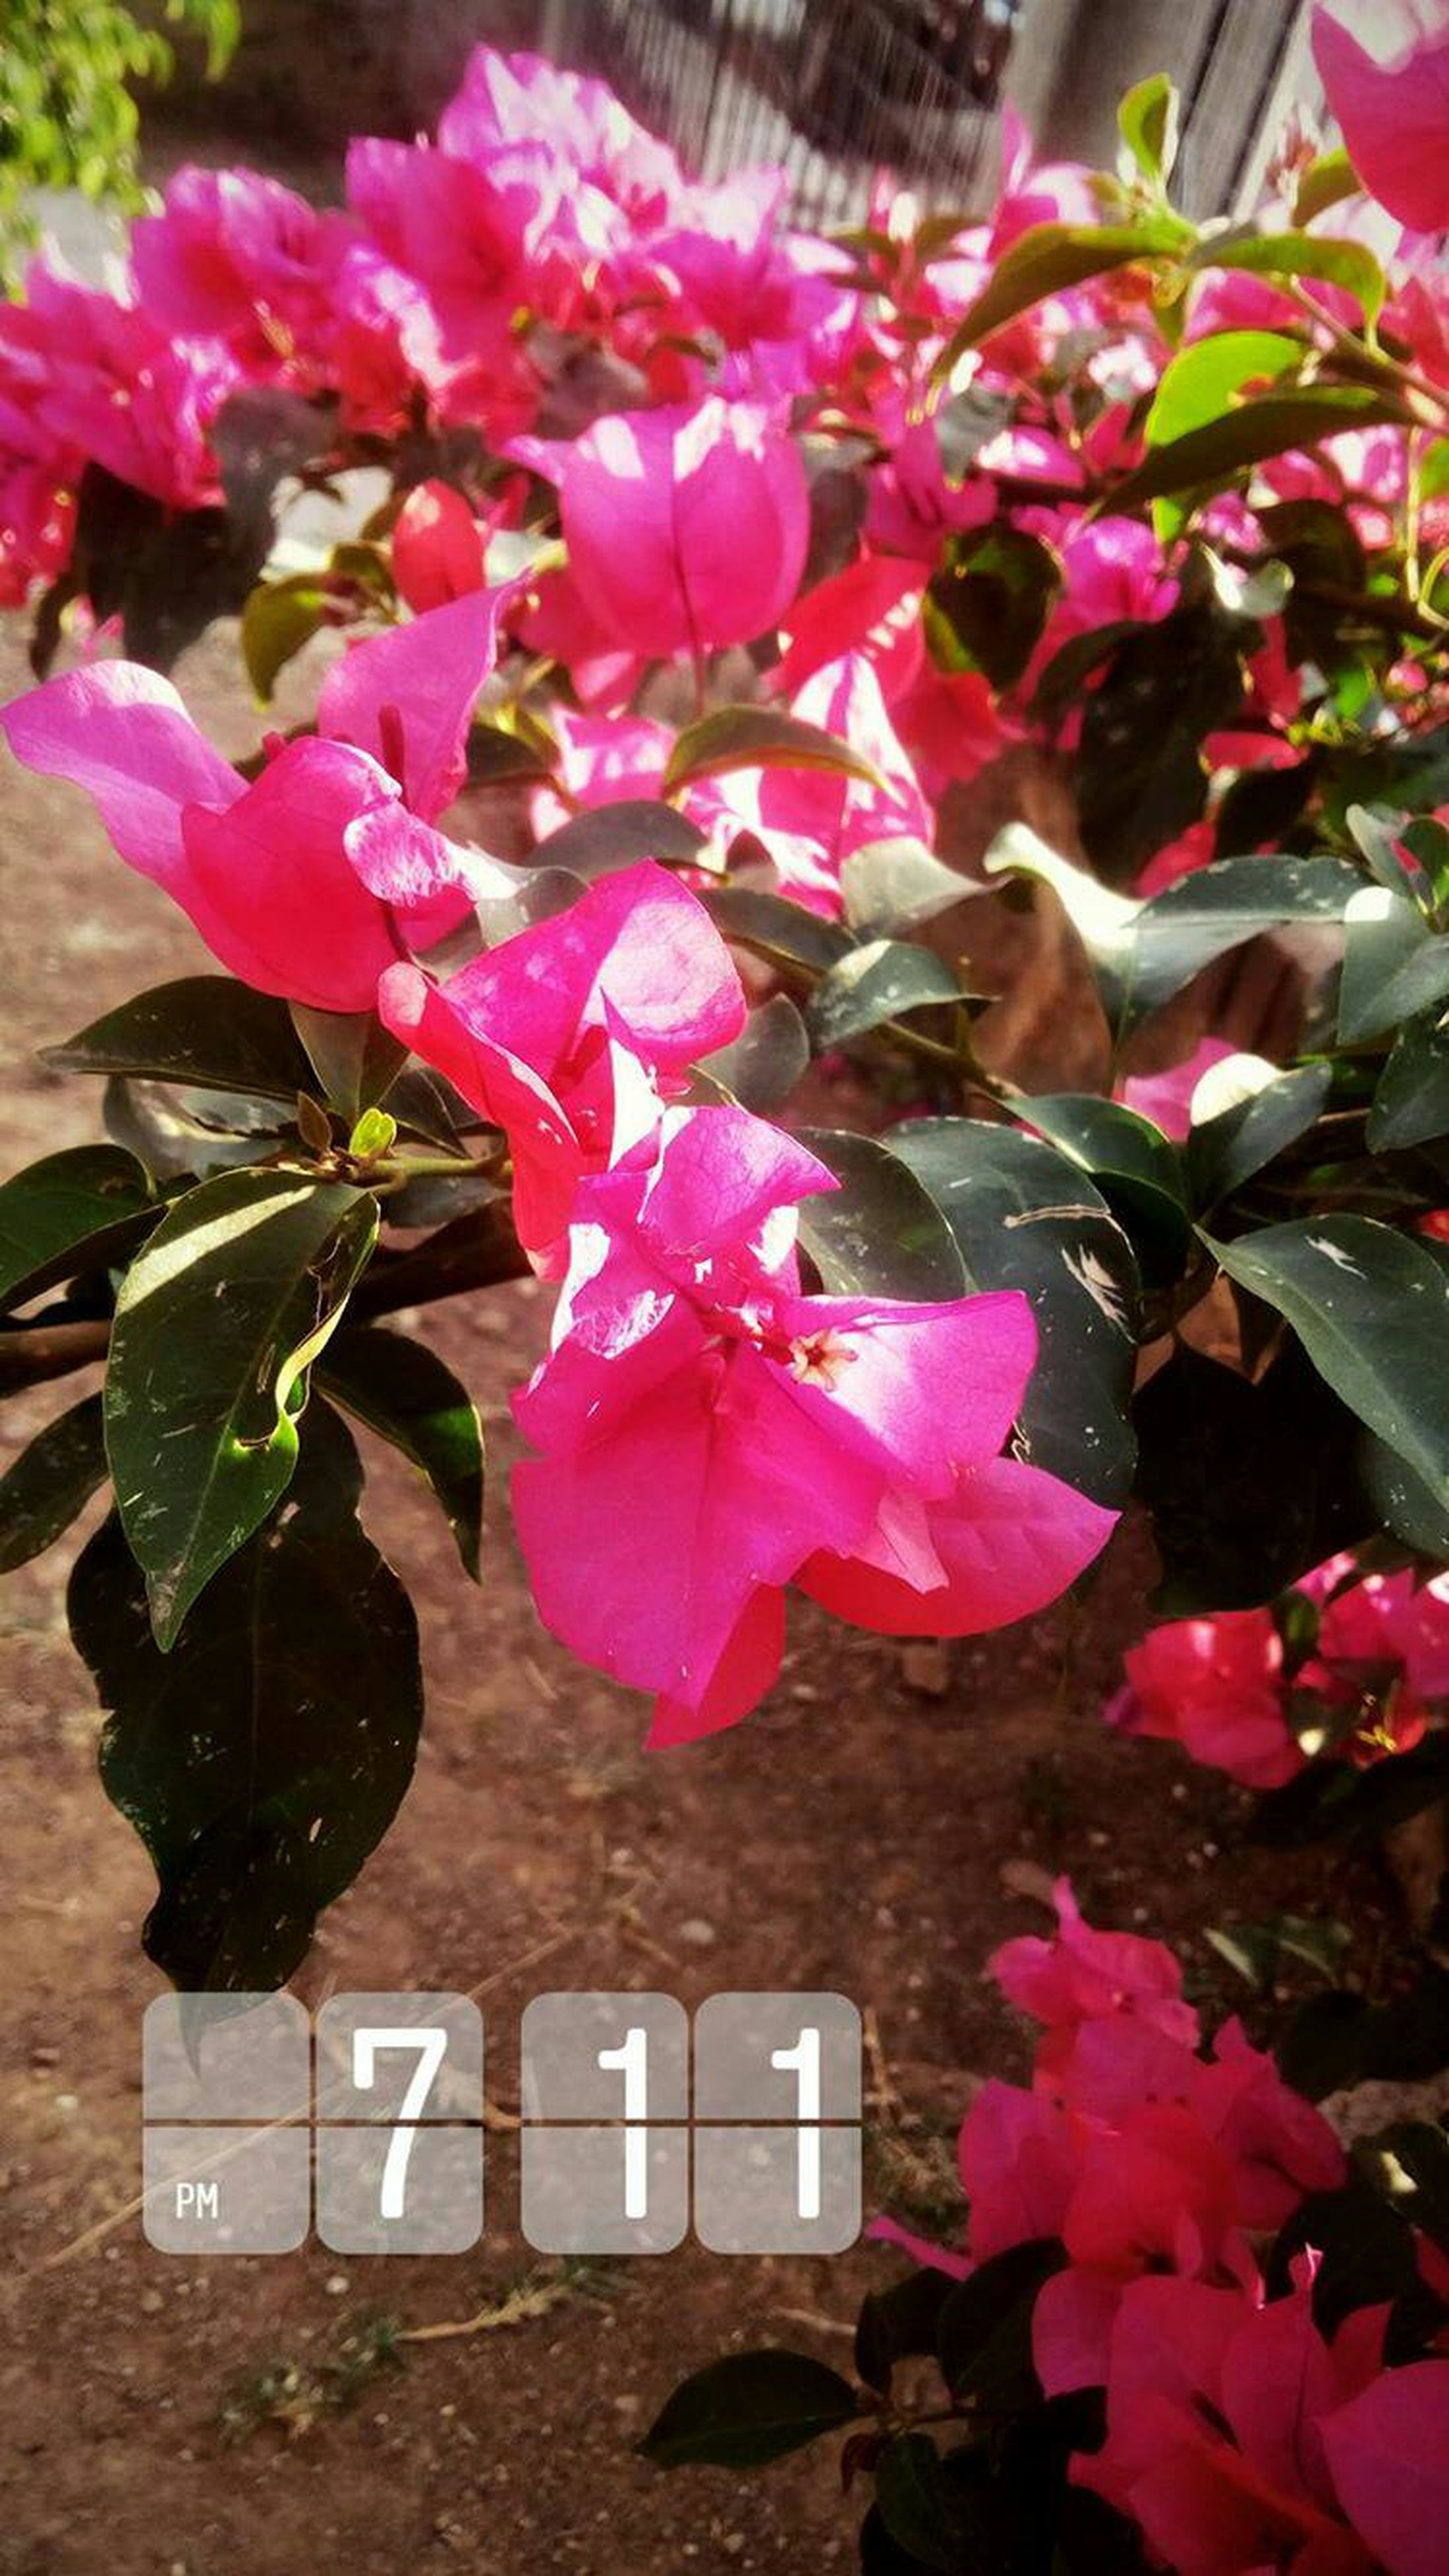 flower, pink color, petal, growth, beauty in nature, fragility, nature, no people, plant, blooming, freshness, outdoors, flower head, day, leaf, close-up, bougainvillea, periwinkle